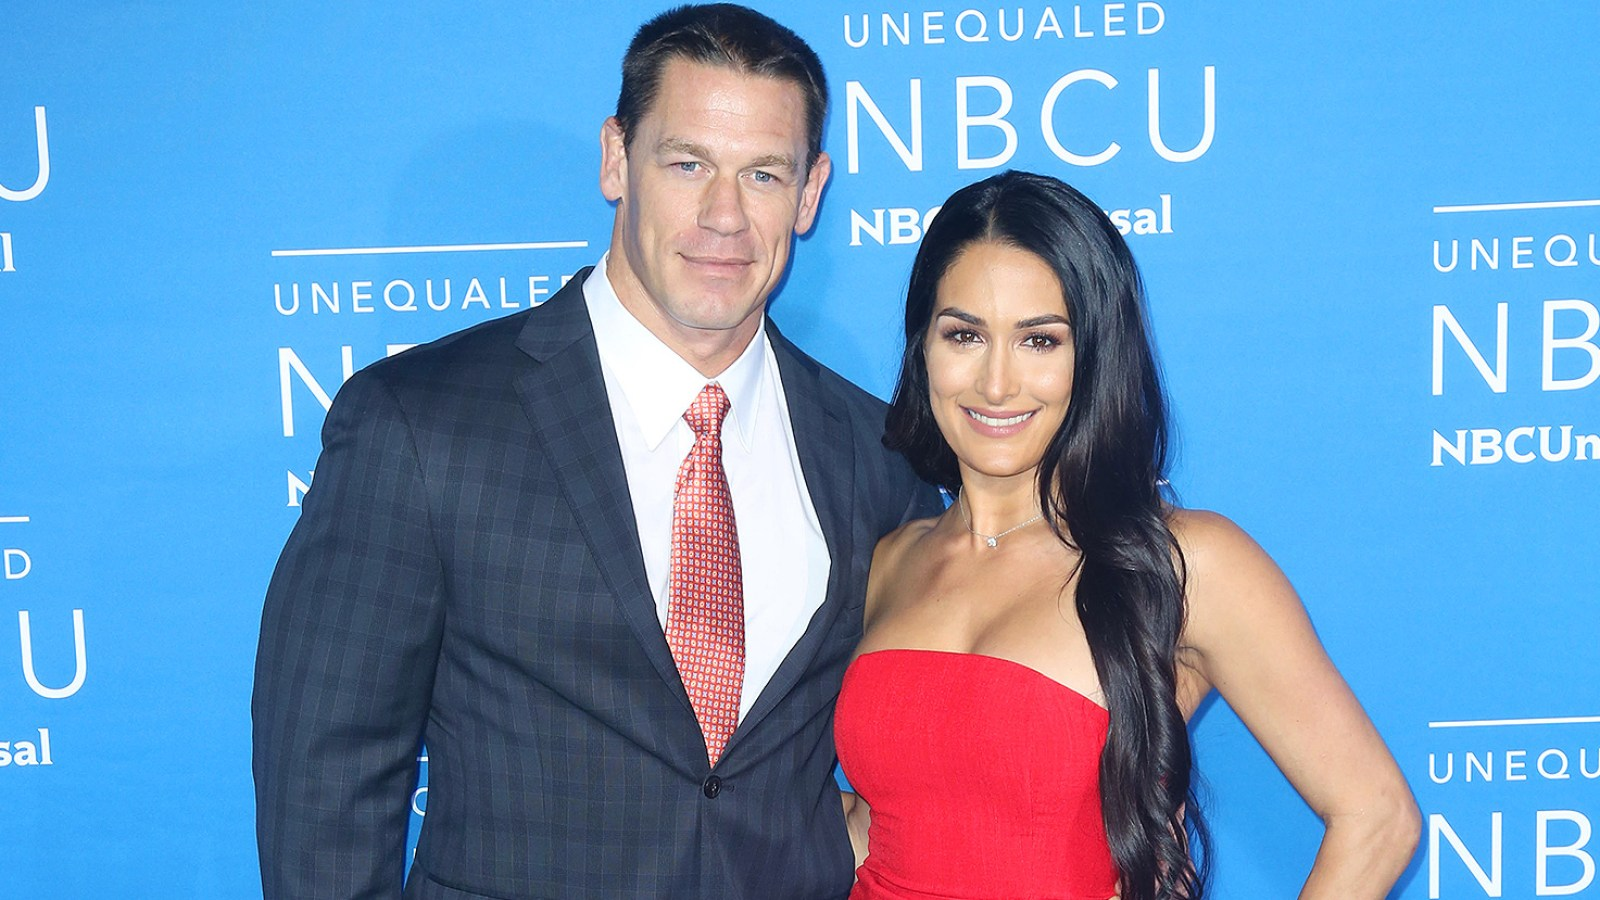 John cena tweets trust is a powerful thing after nikki bella split m4hsunfo